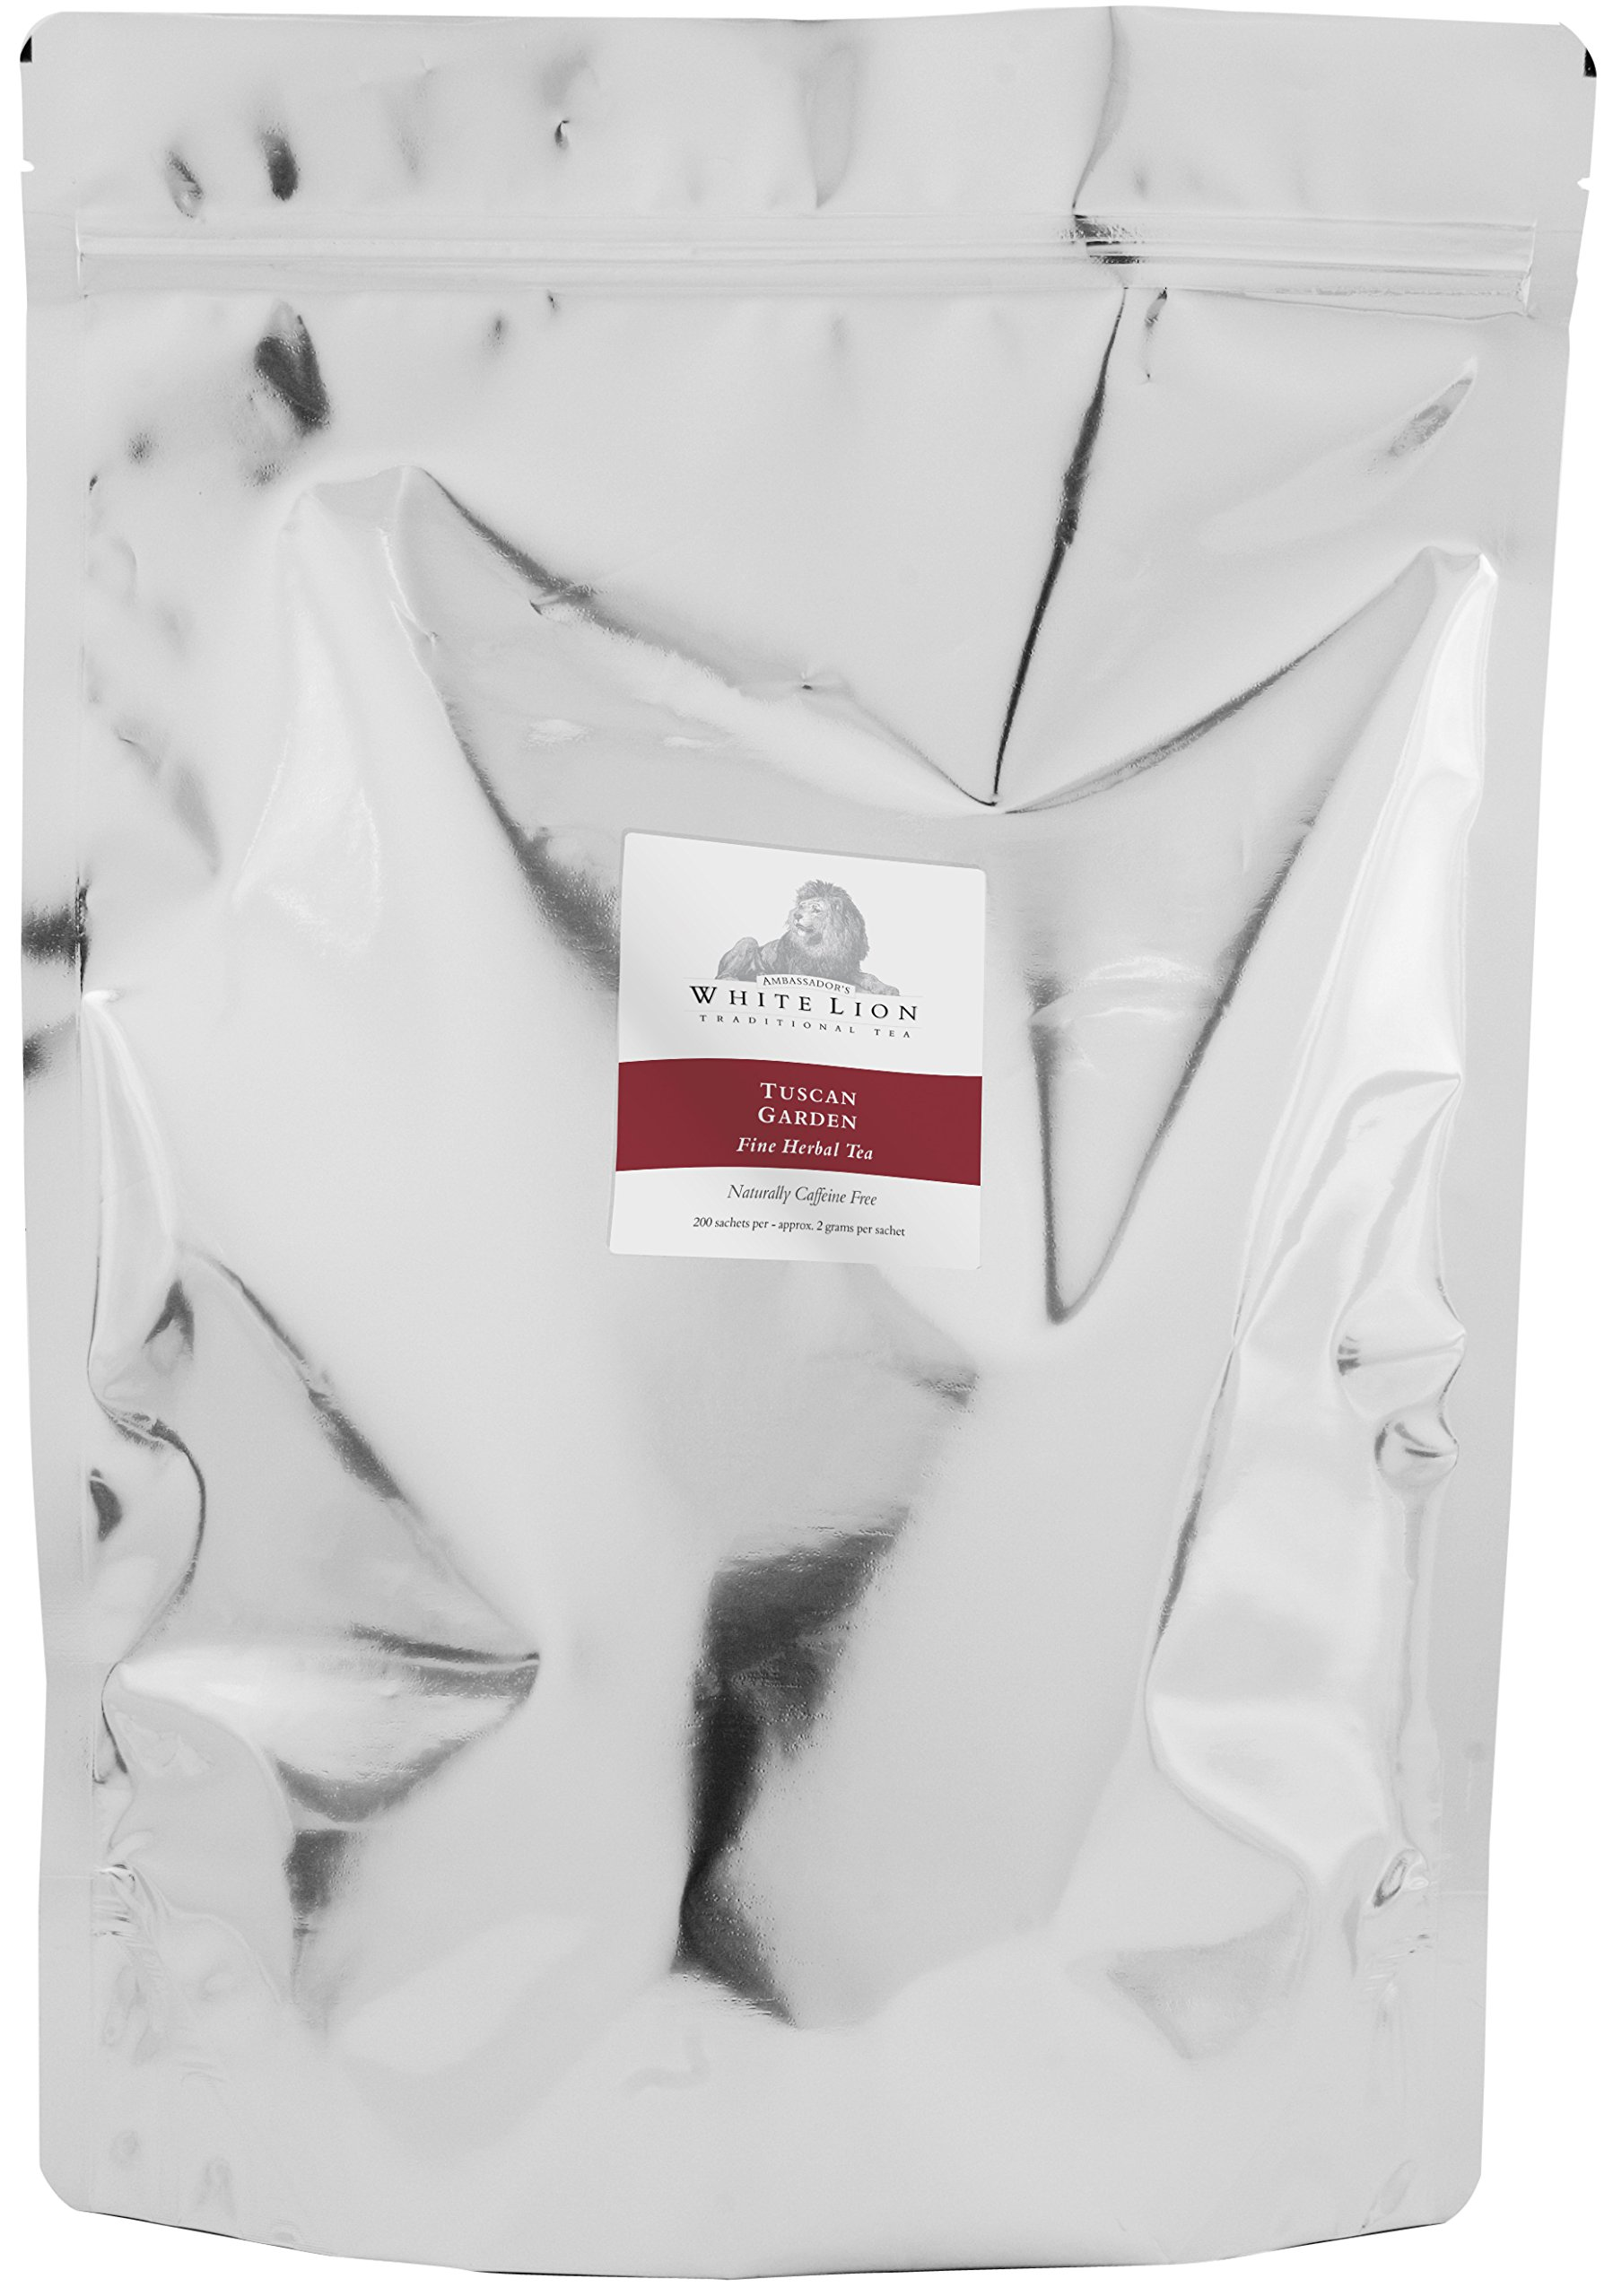 White Lion Limited - Tuscan Garden Fine Herbal Tea Bulk Sachets 2-200 Count Case by White Lion Limited (Image #1)